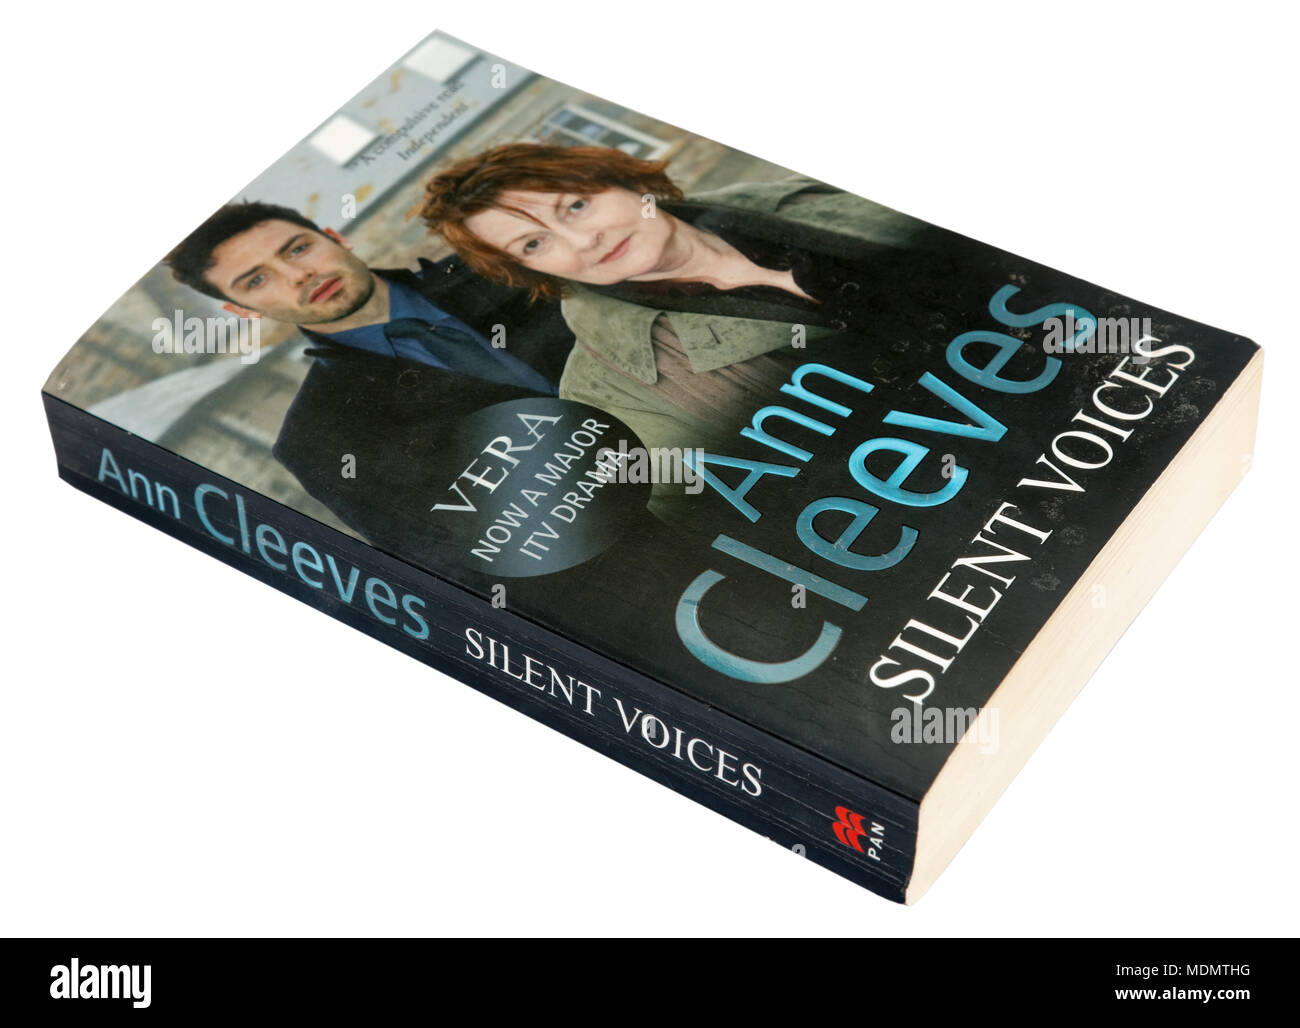 Silent Voices by Ann Cleeves - a Vera story - Stock Image